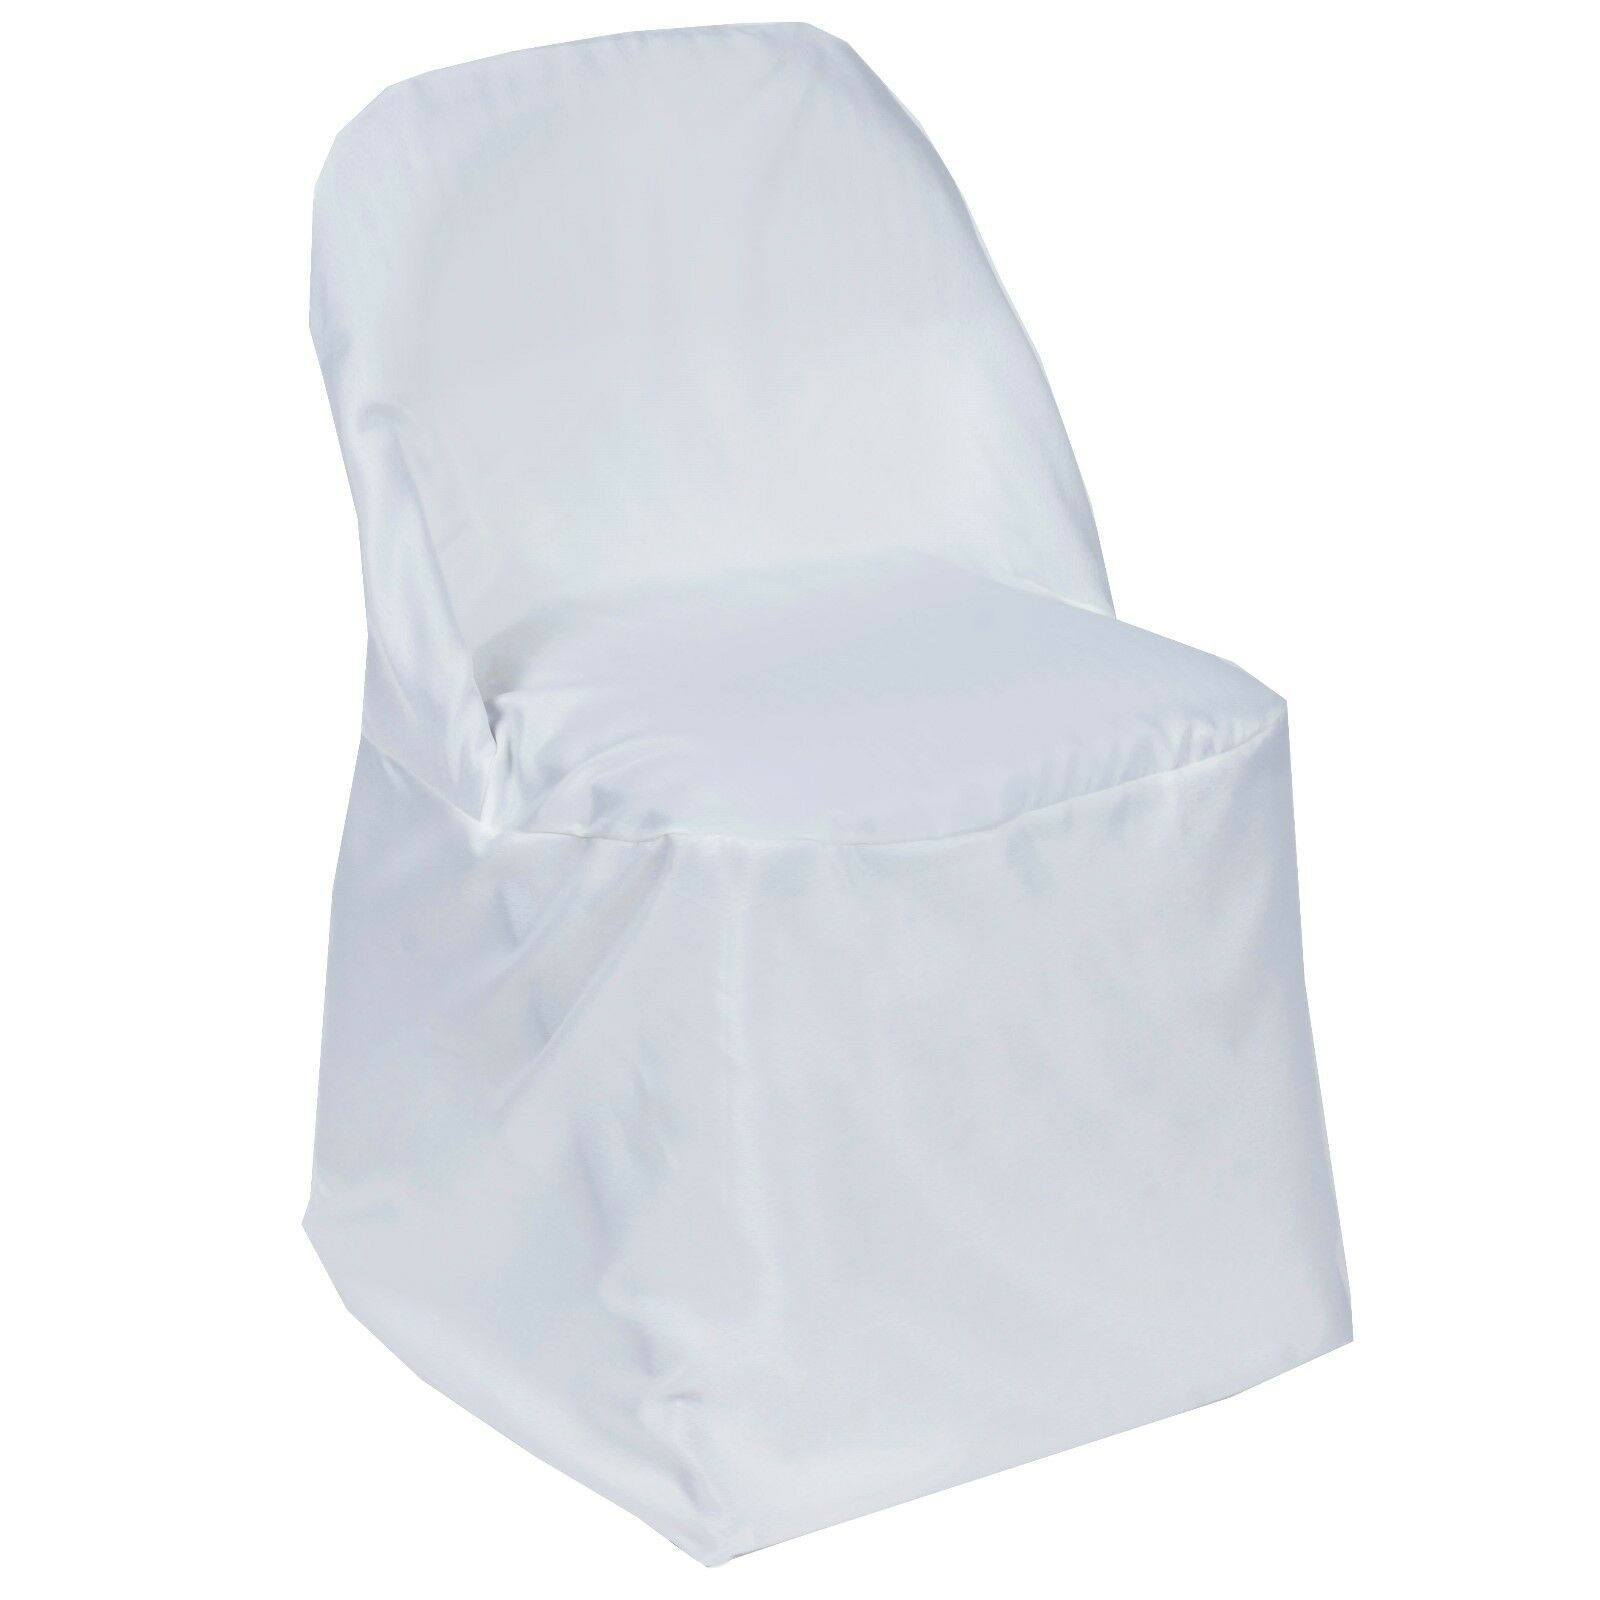 20 Weiß POLYESTER ROUND FOLDING CHAIR COVER. NEW